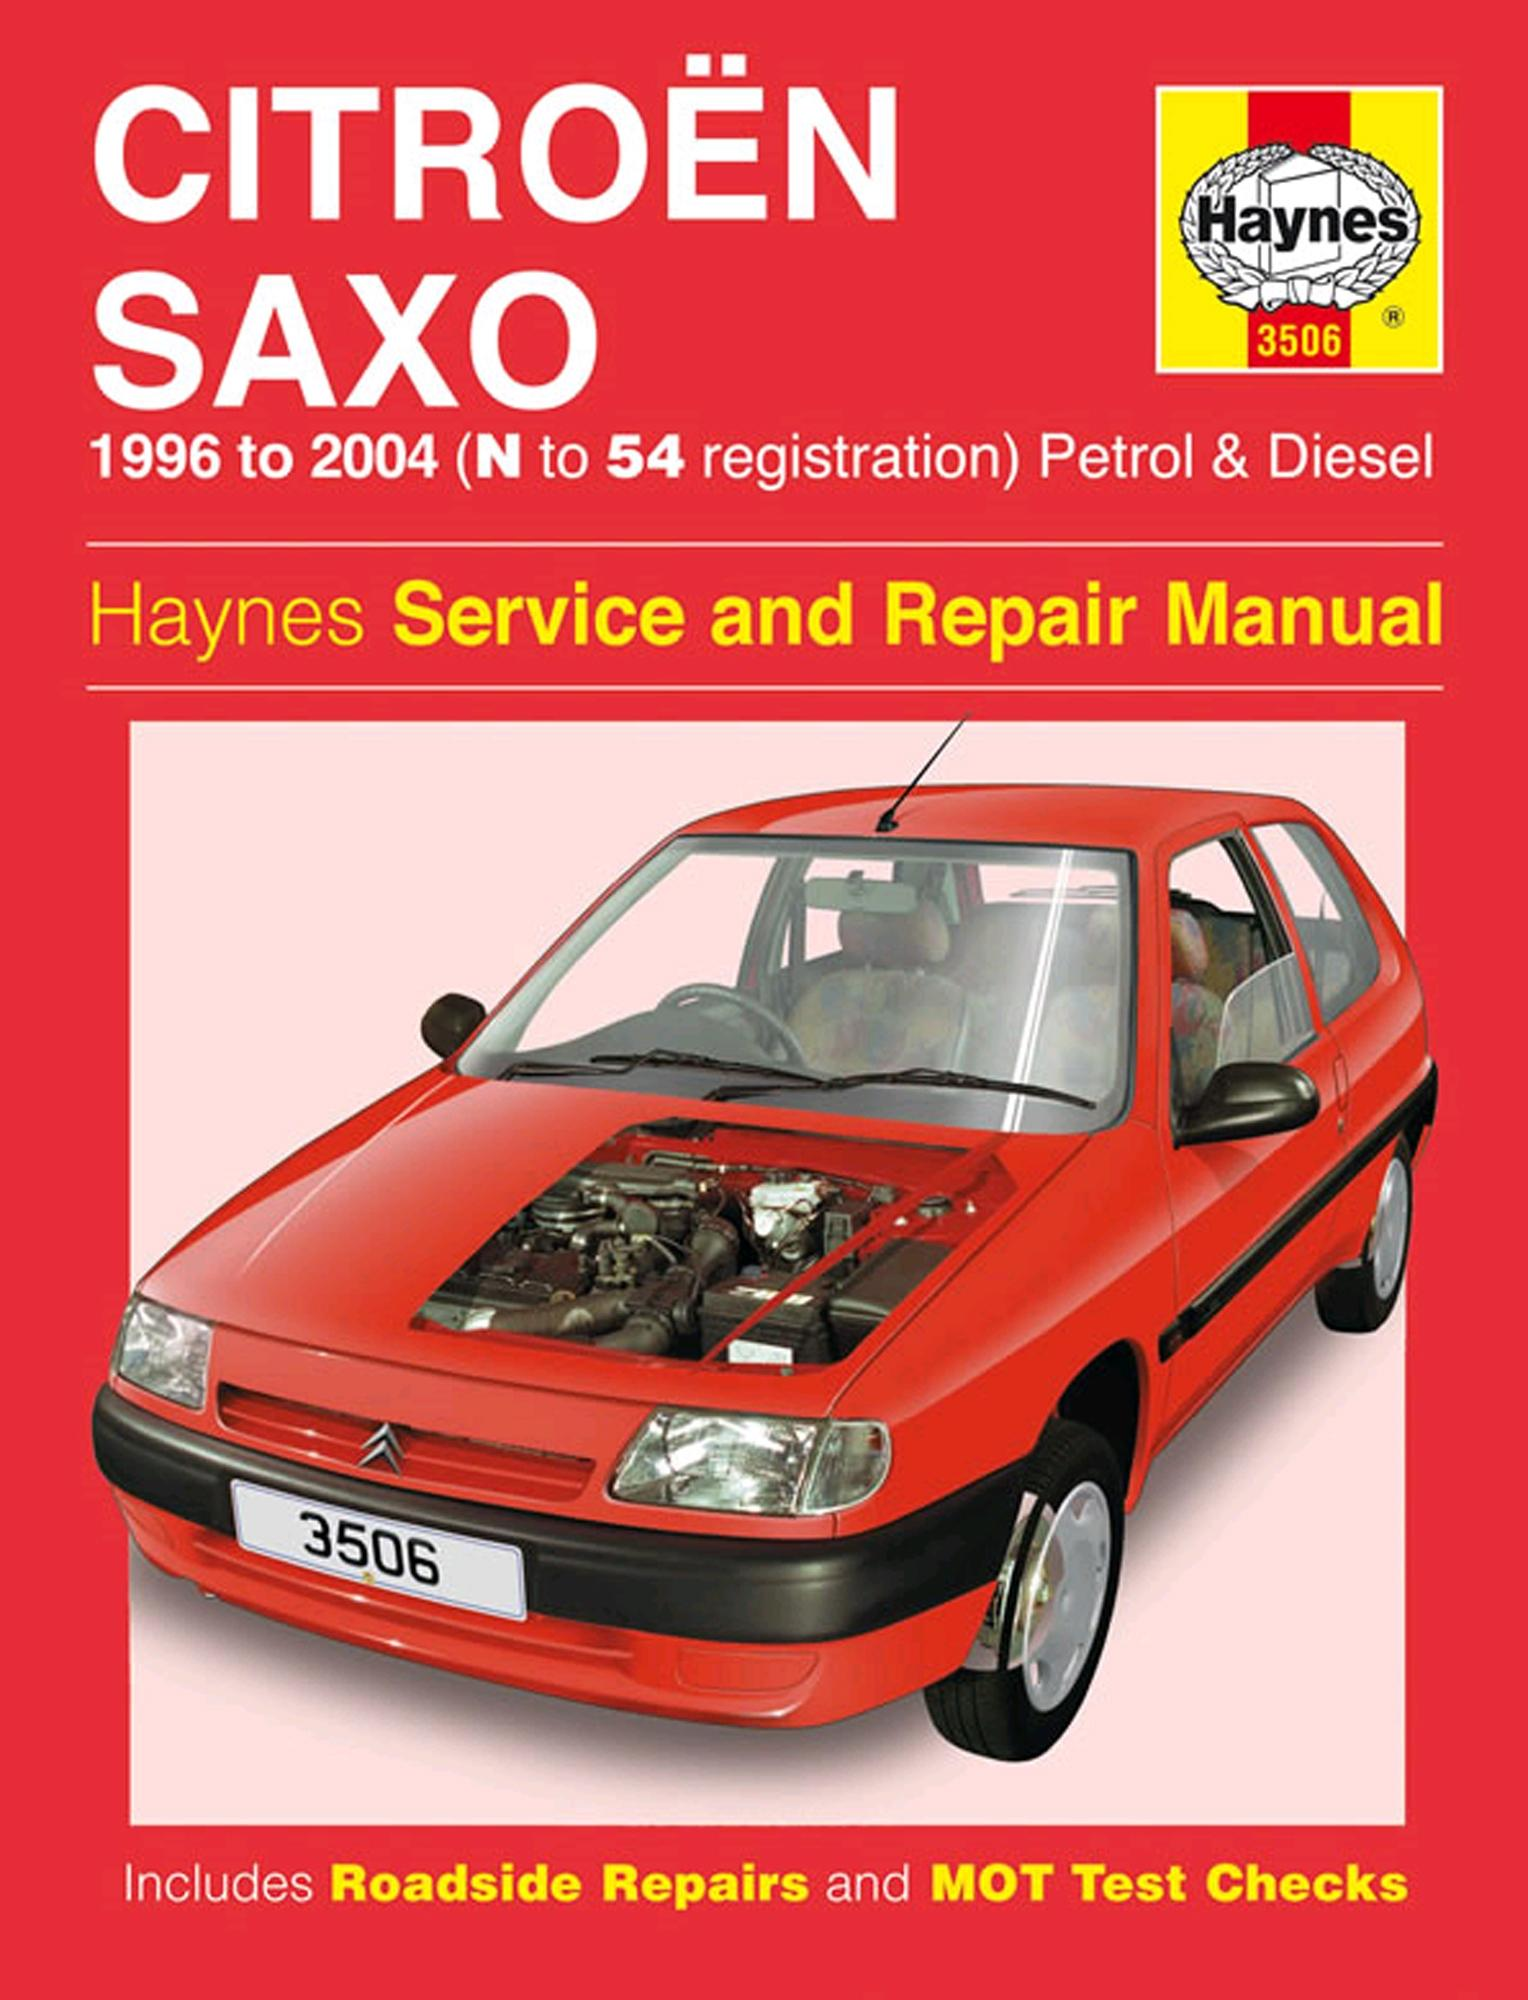 haynes citroen saxo 96 04 manua rh halfords com citroen saxo owners manual free download citroen saxo owners manual pdf